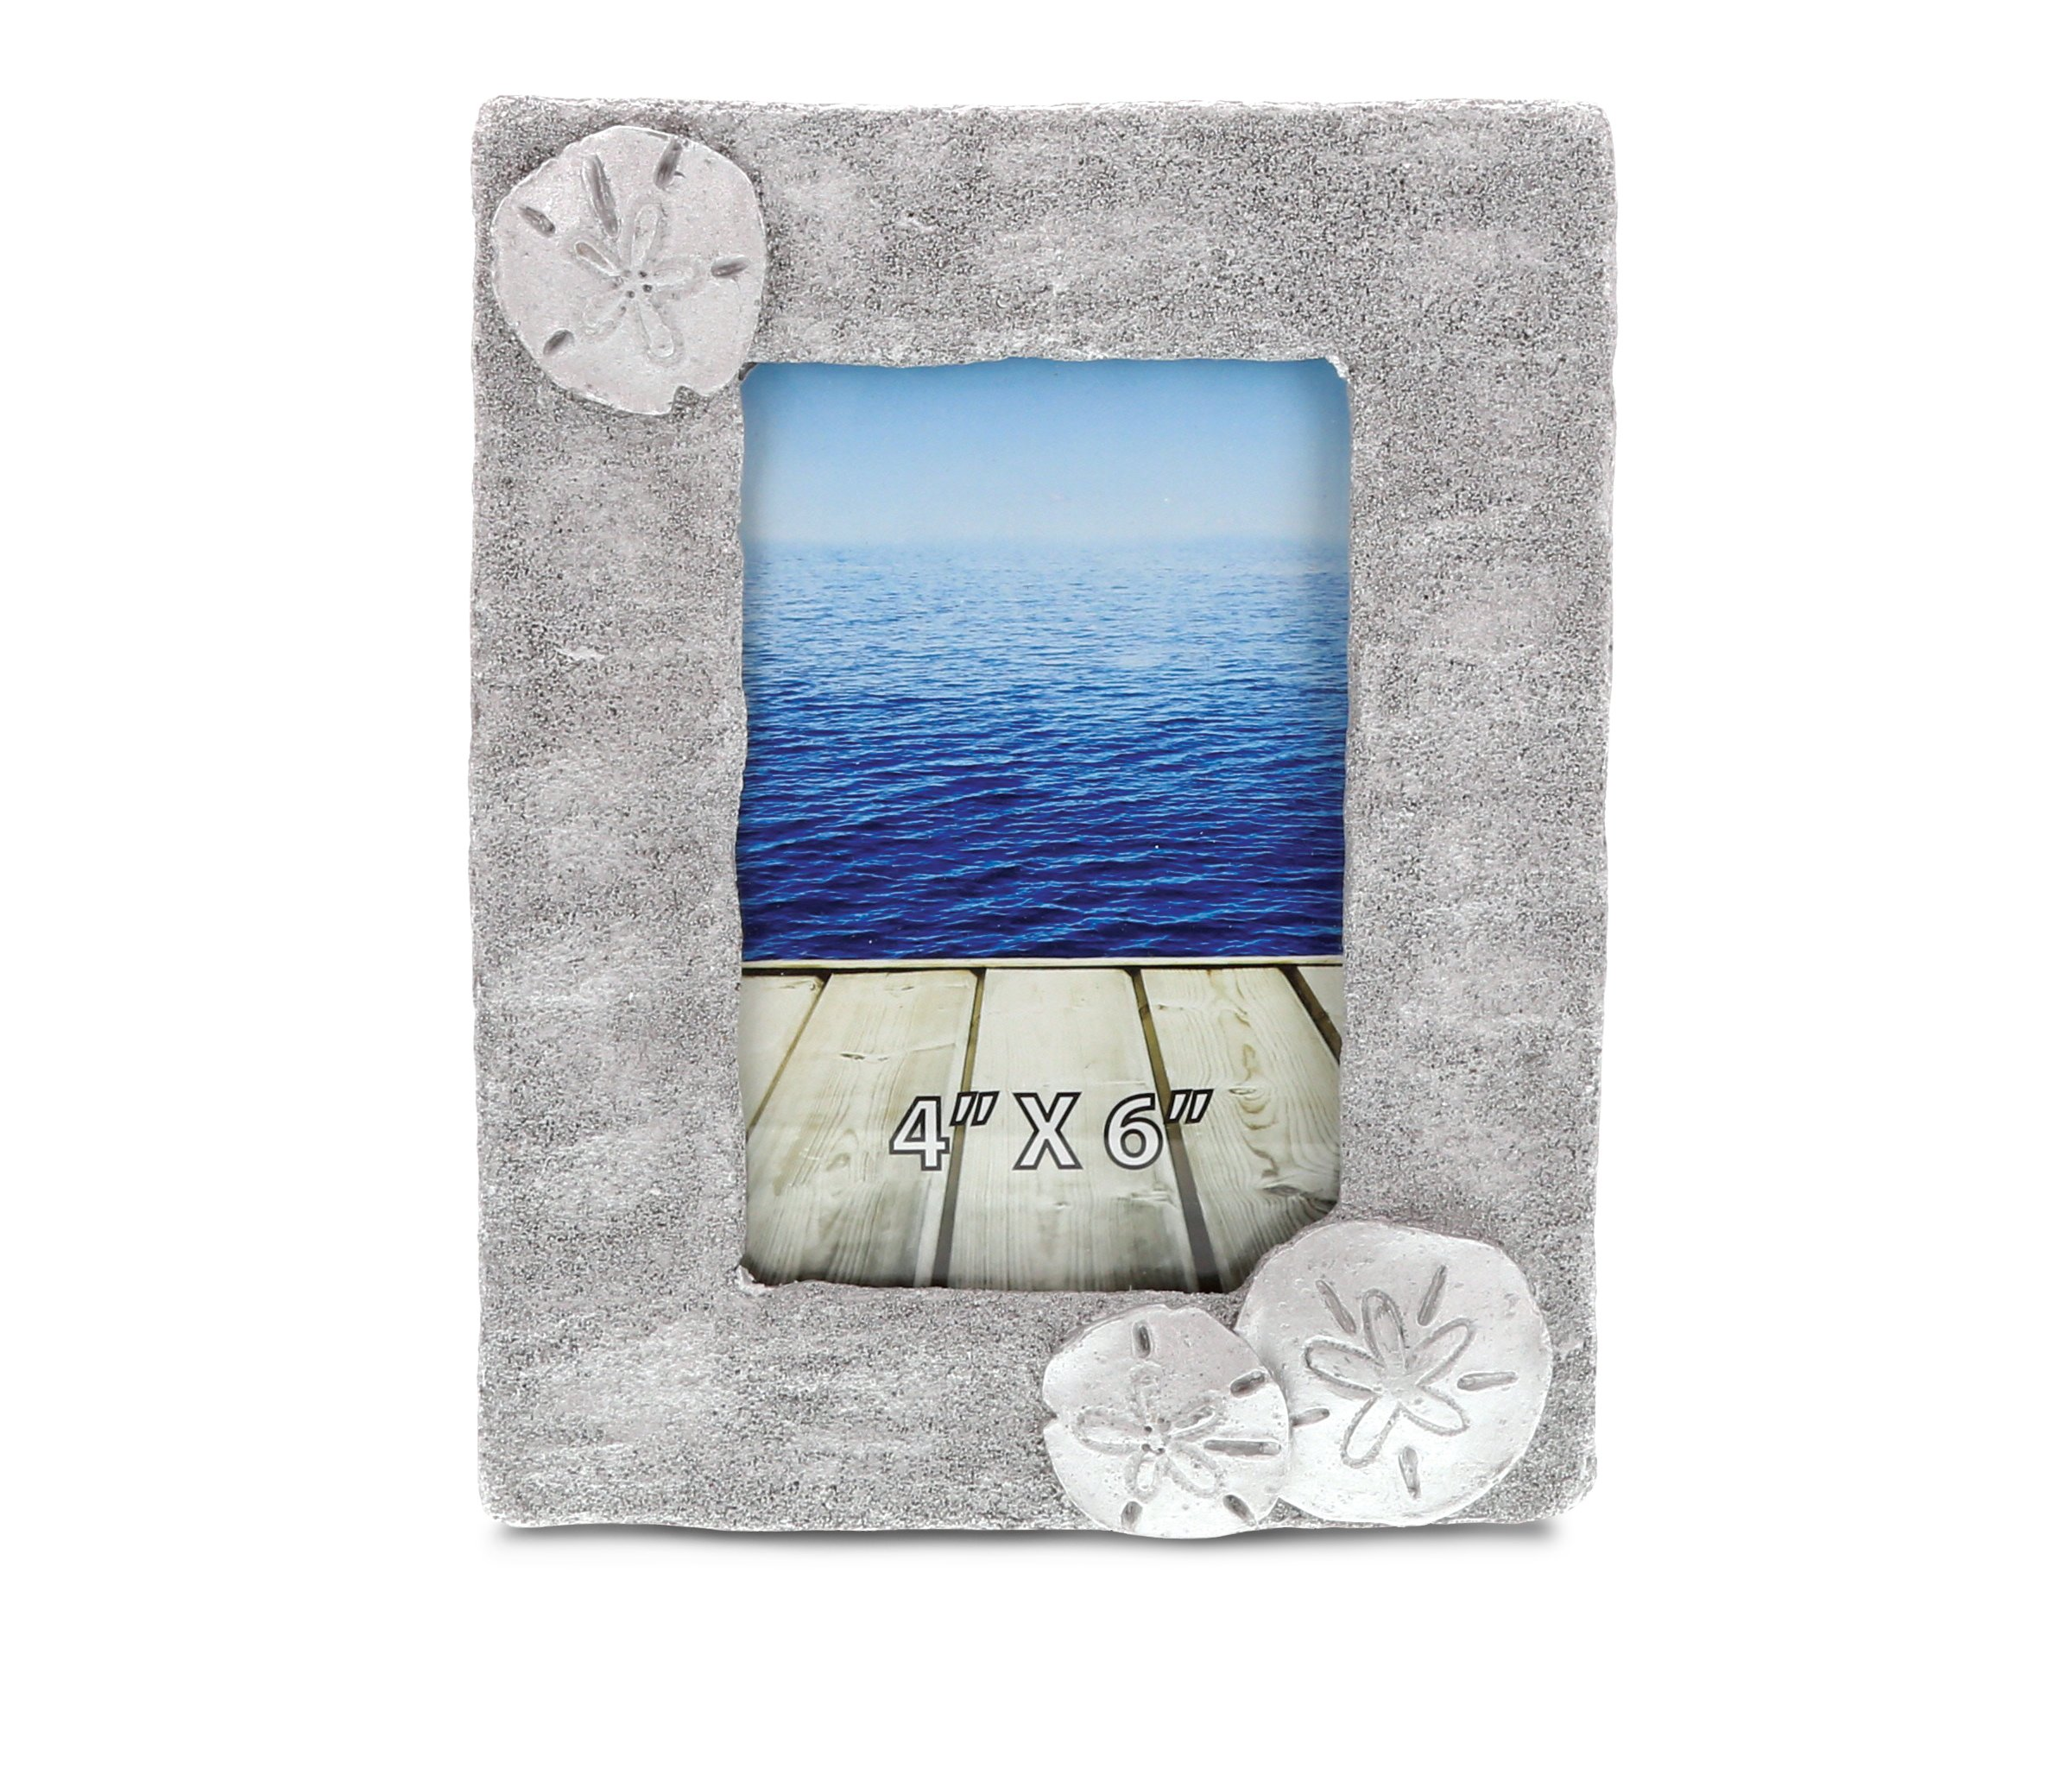 CoTa Global Silver Sand Dollar Photo Frame 4''x6'' Nautical Handcrafted Resin Picture Holder Aquatic Sea Biscuits Animal Ocean Life Memories Cute & Simple Frame Bright & Unique for Marine Themed Rooms